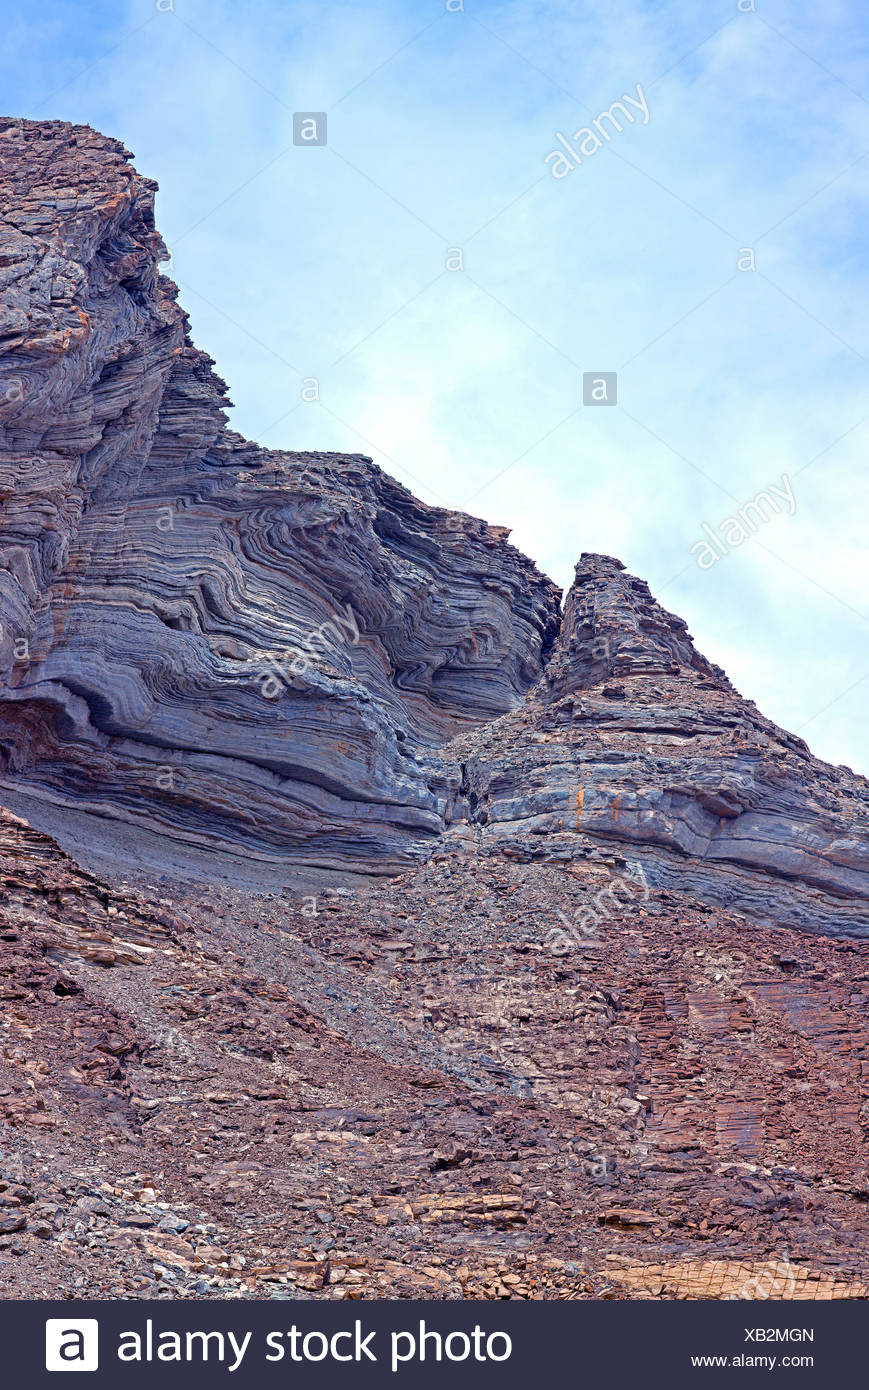 Cliff face with wave-shaped rejections, Damaraland, Namibia - Stock Image